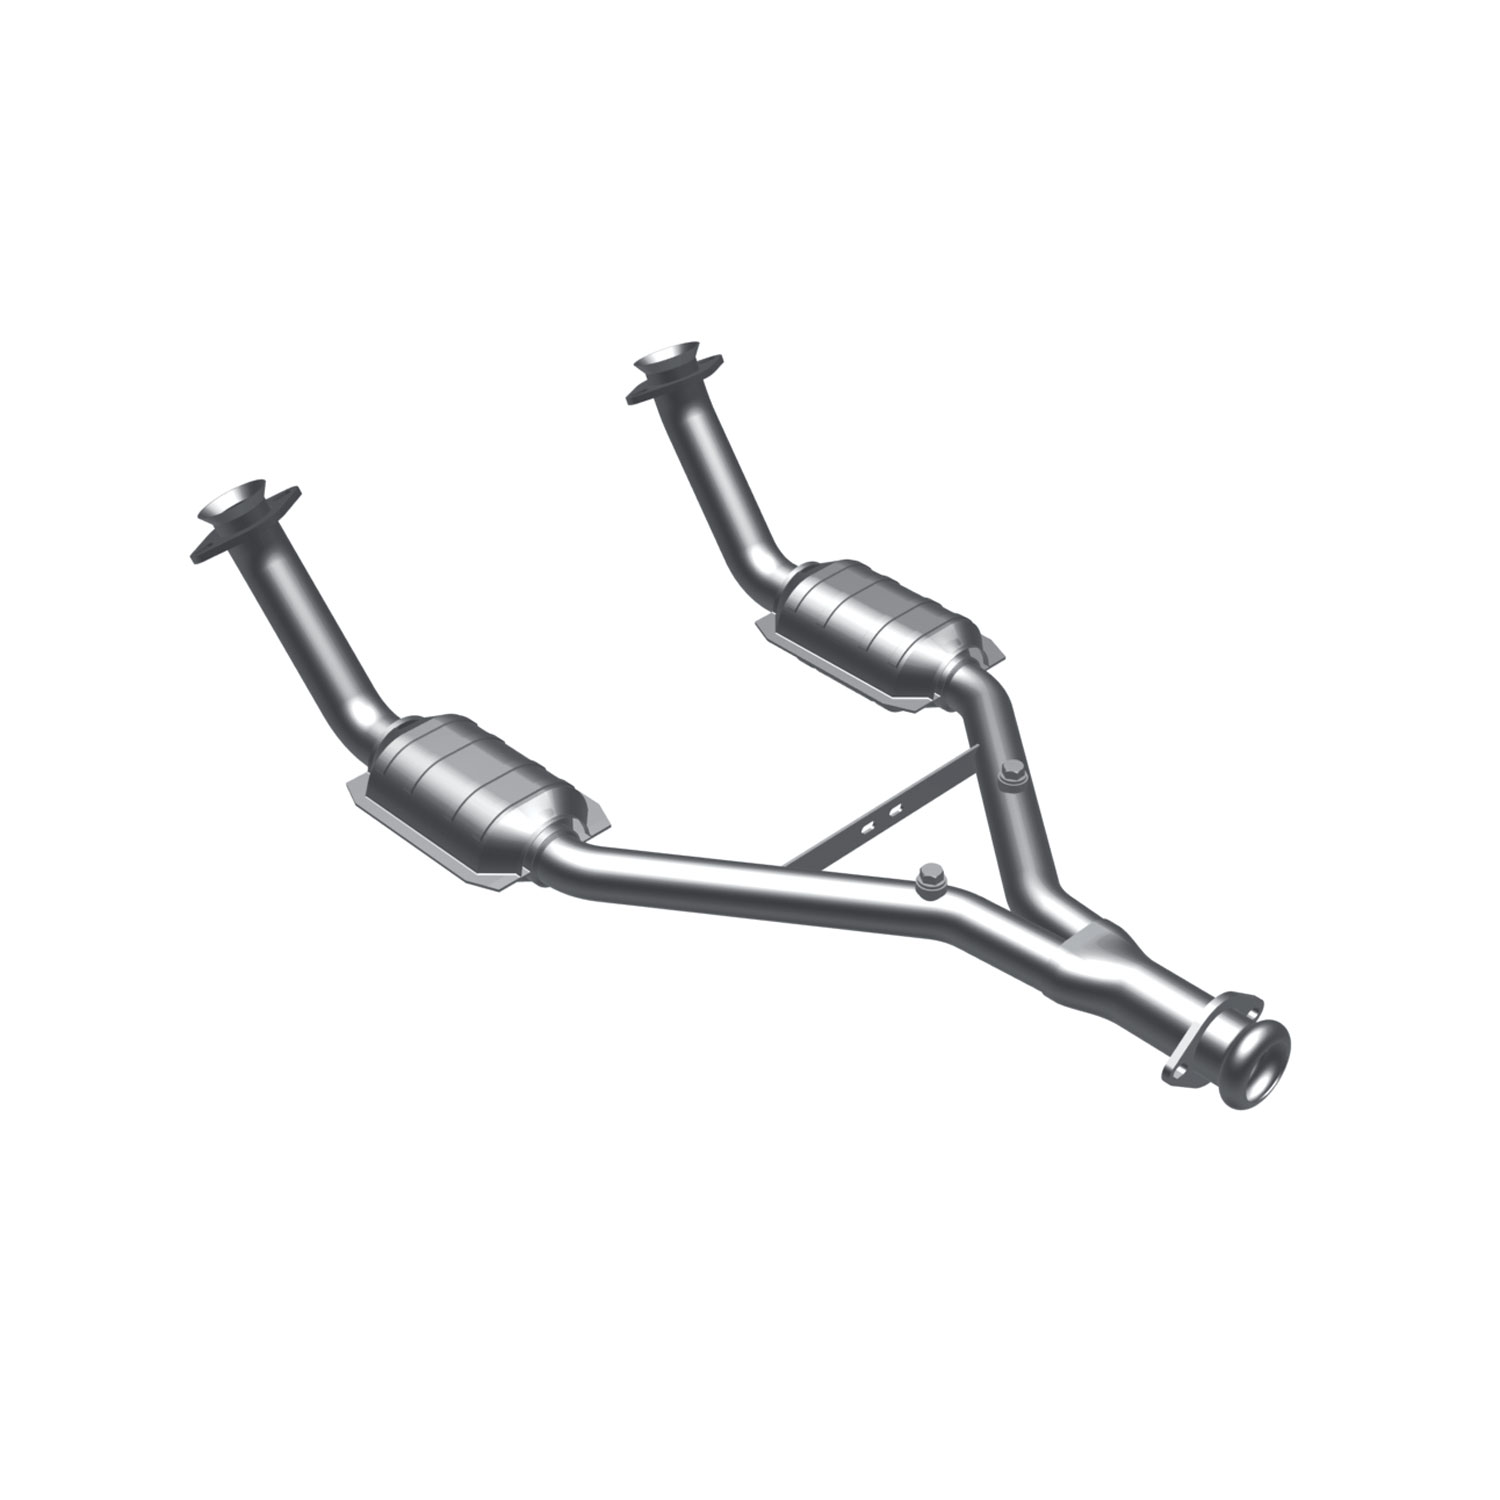 Magnaflow Direct Fit Catalytic Converter Dual Y Pipe